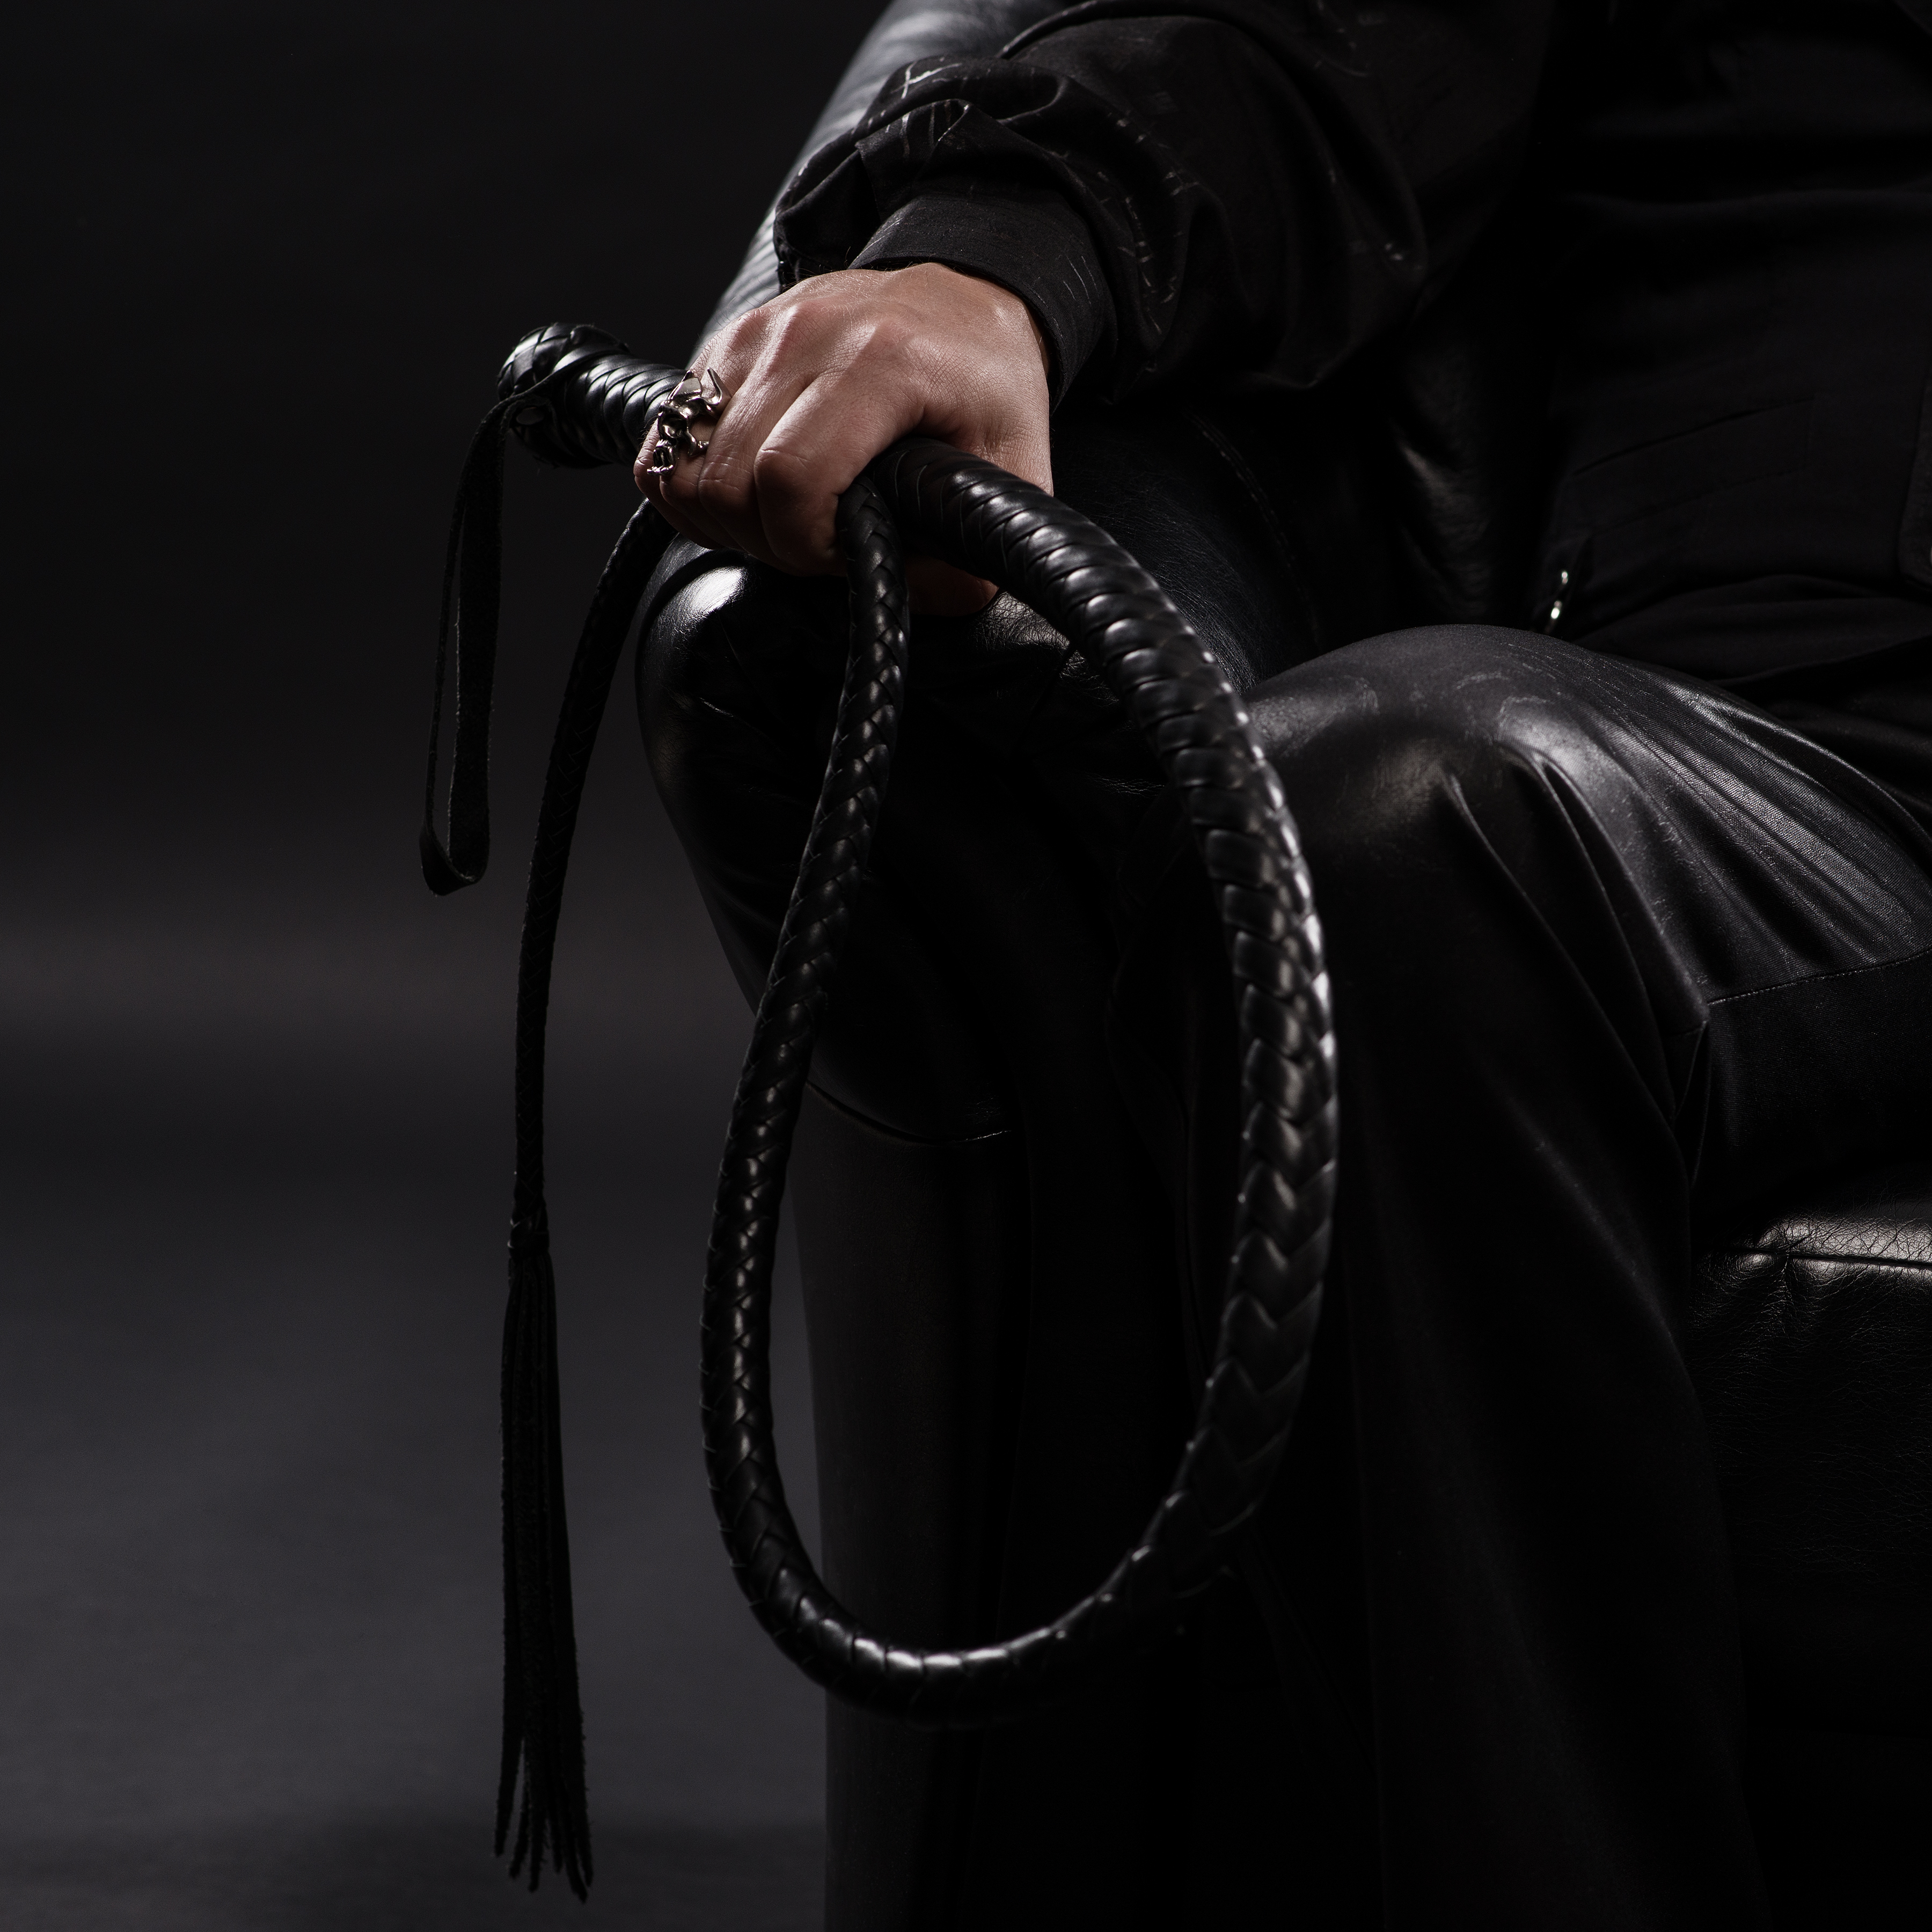 BDSM: Dominance – Do I Have to Be Strict and in Leather?